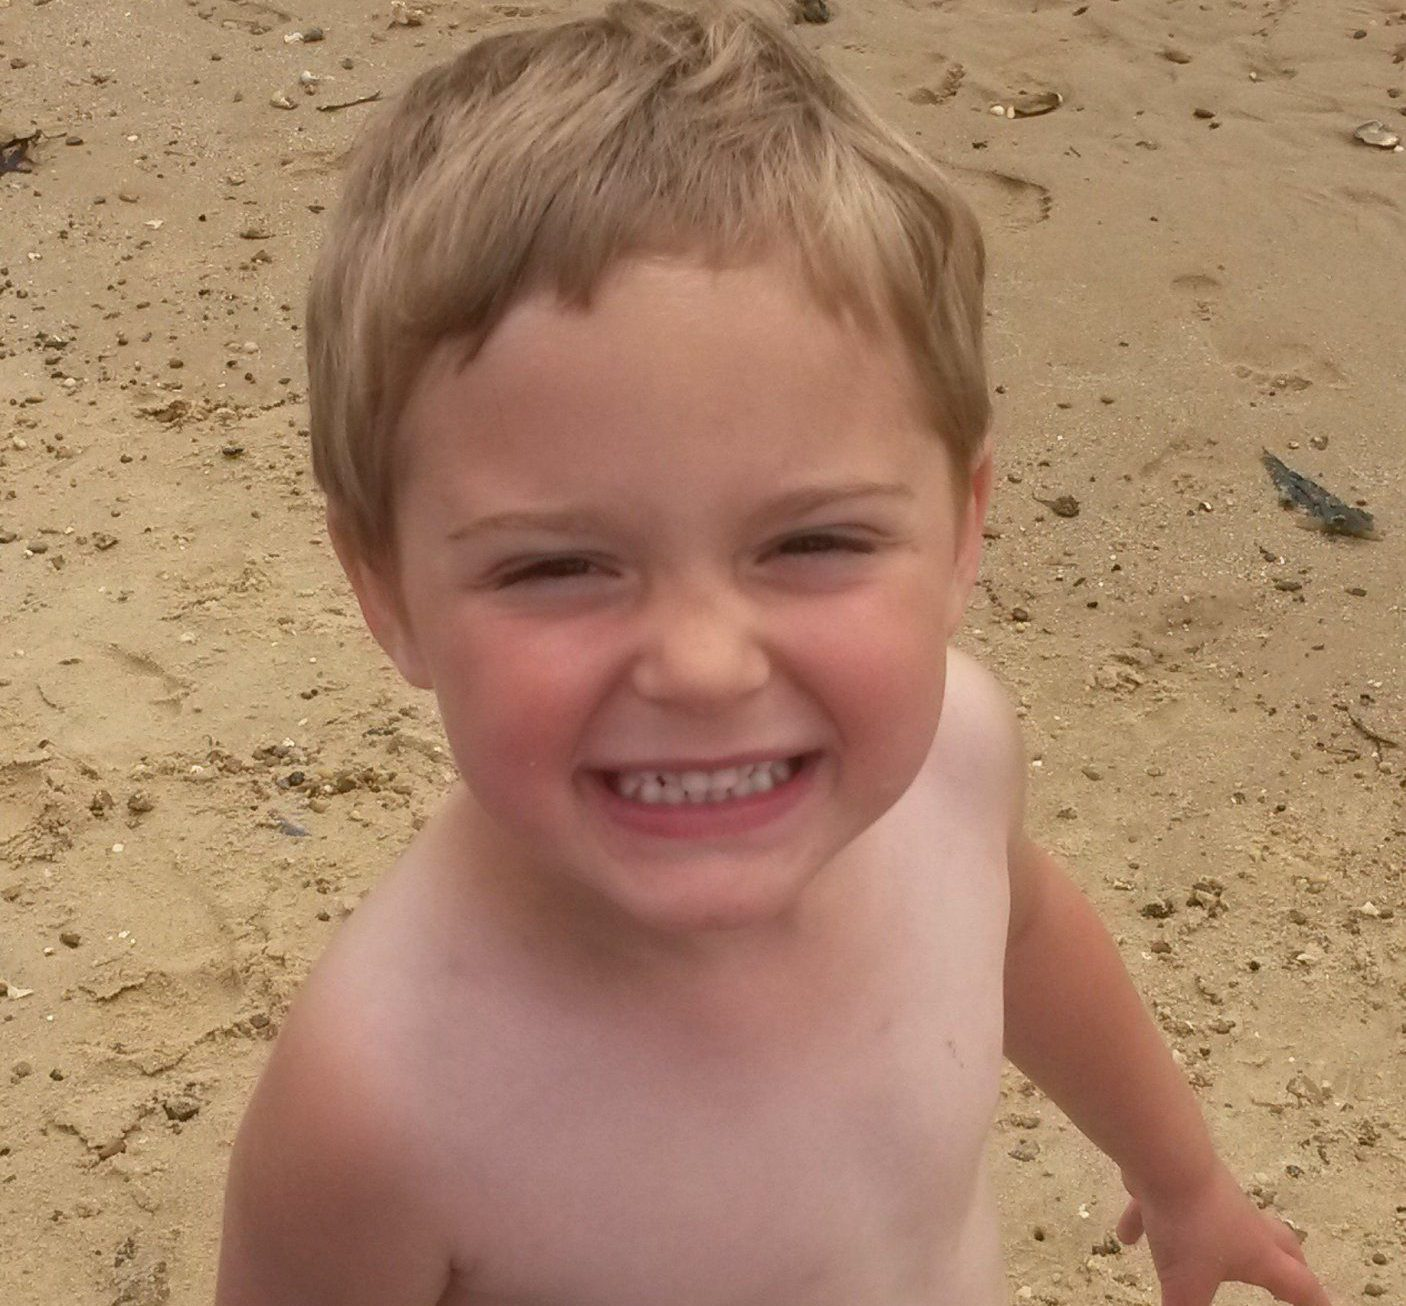 Dexter Neal, 3, the boy who died after being bitten by a dog has been named by police. See Masons story MNDOG; A mother-of-three was yesterday (Sat) charged by police in connection with the death of a three-year-old boy who was mauled to death by her dog. Jade Dunne, 29, was arrested after the fatal attack which saw young Dexter Neal savaged at her home in Halstead, Essex. The youngster was visiting her house for a play date at the time of the attack on August 19. But more than six months after he was killed, she has been charged with owning a dog dangerously out of control, resulting in death. The dog, an American Bulldog called Ruby, has since been destroyed.